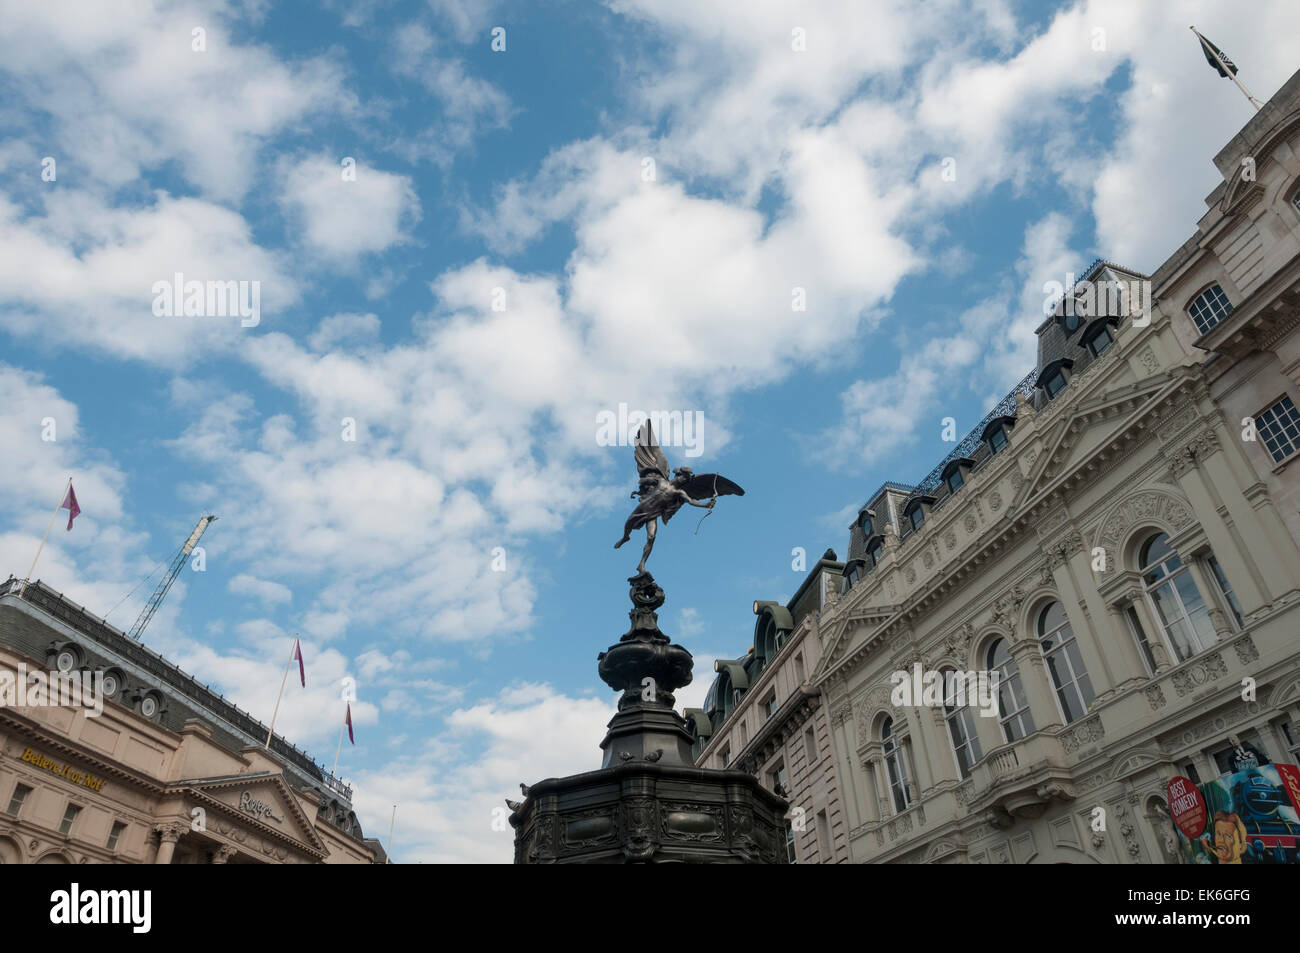 Eros statue at Piccadilly Circus, London. - Stock Image